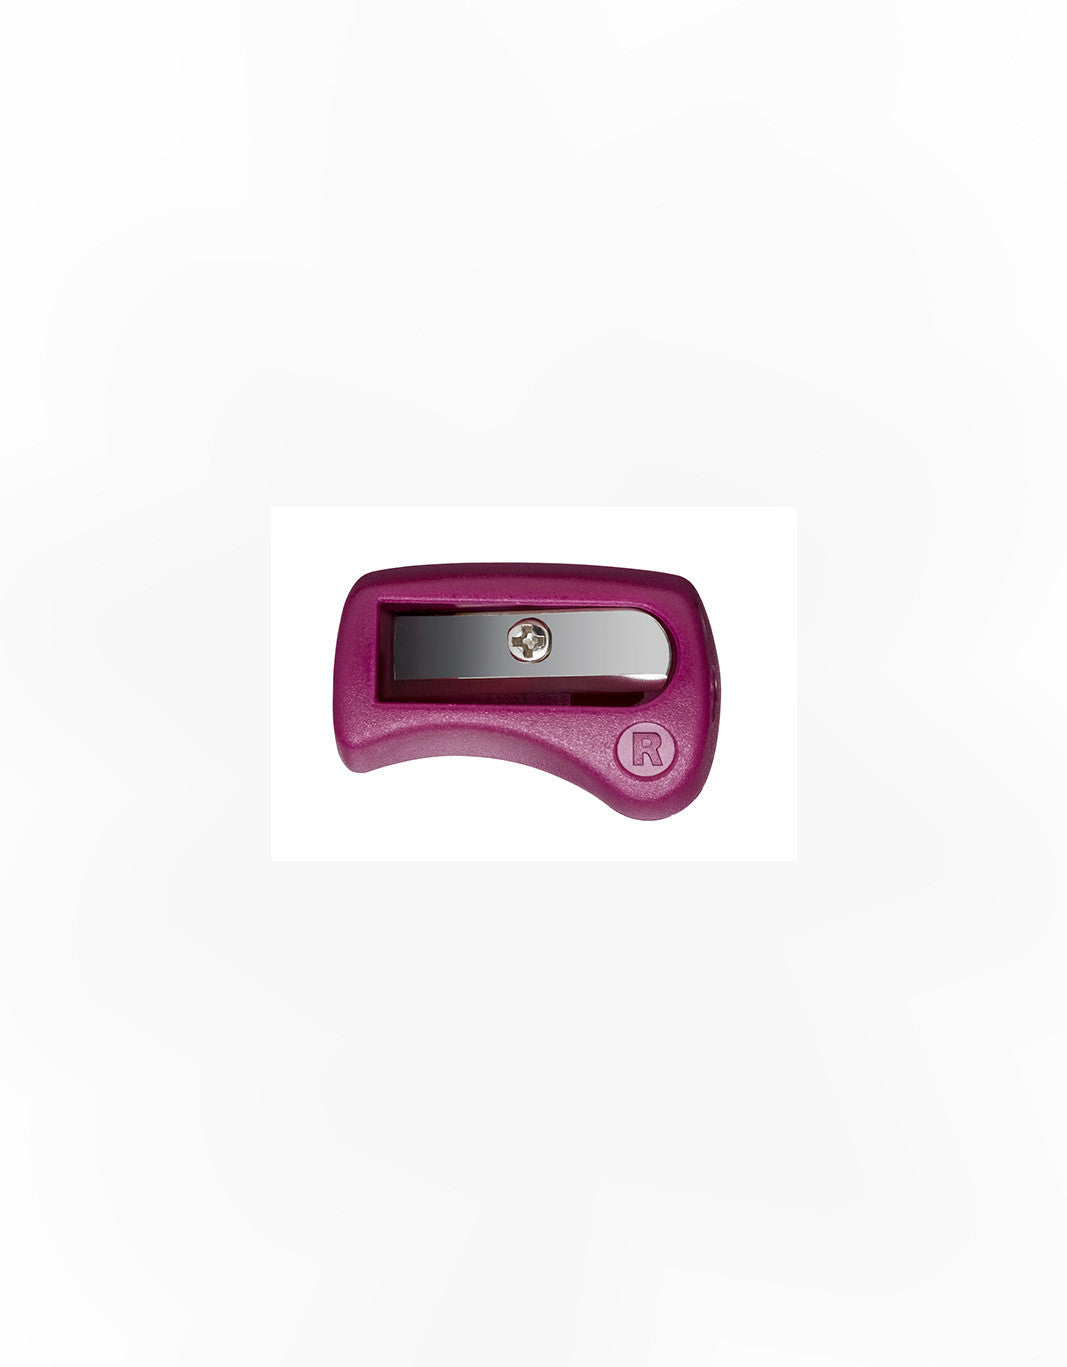 EASYergo 3.15 Sharpeners Righthand Lilac